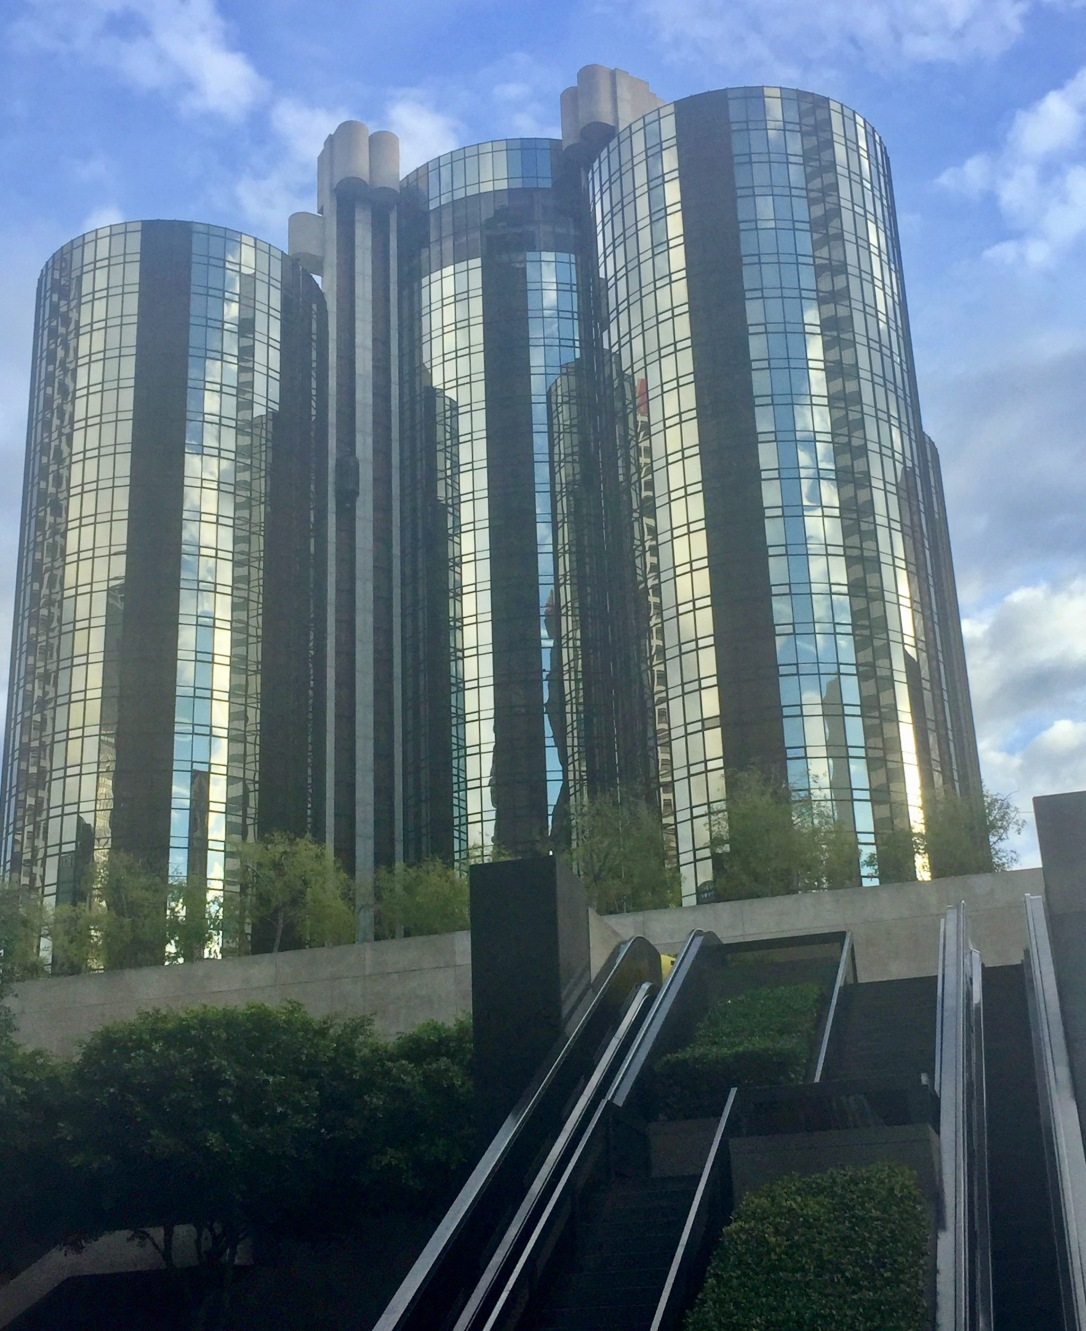 The Westin Bonaventure-Los Angeles, downtown.